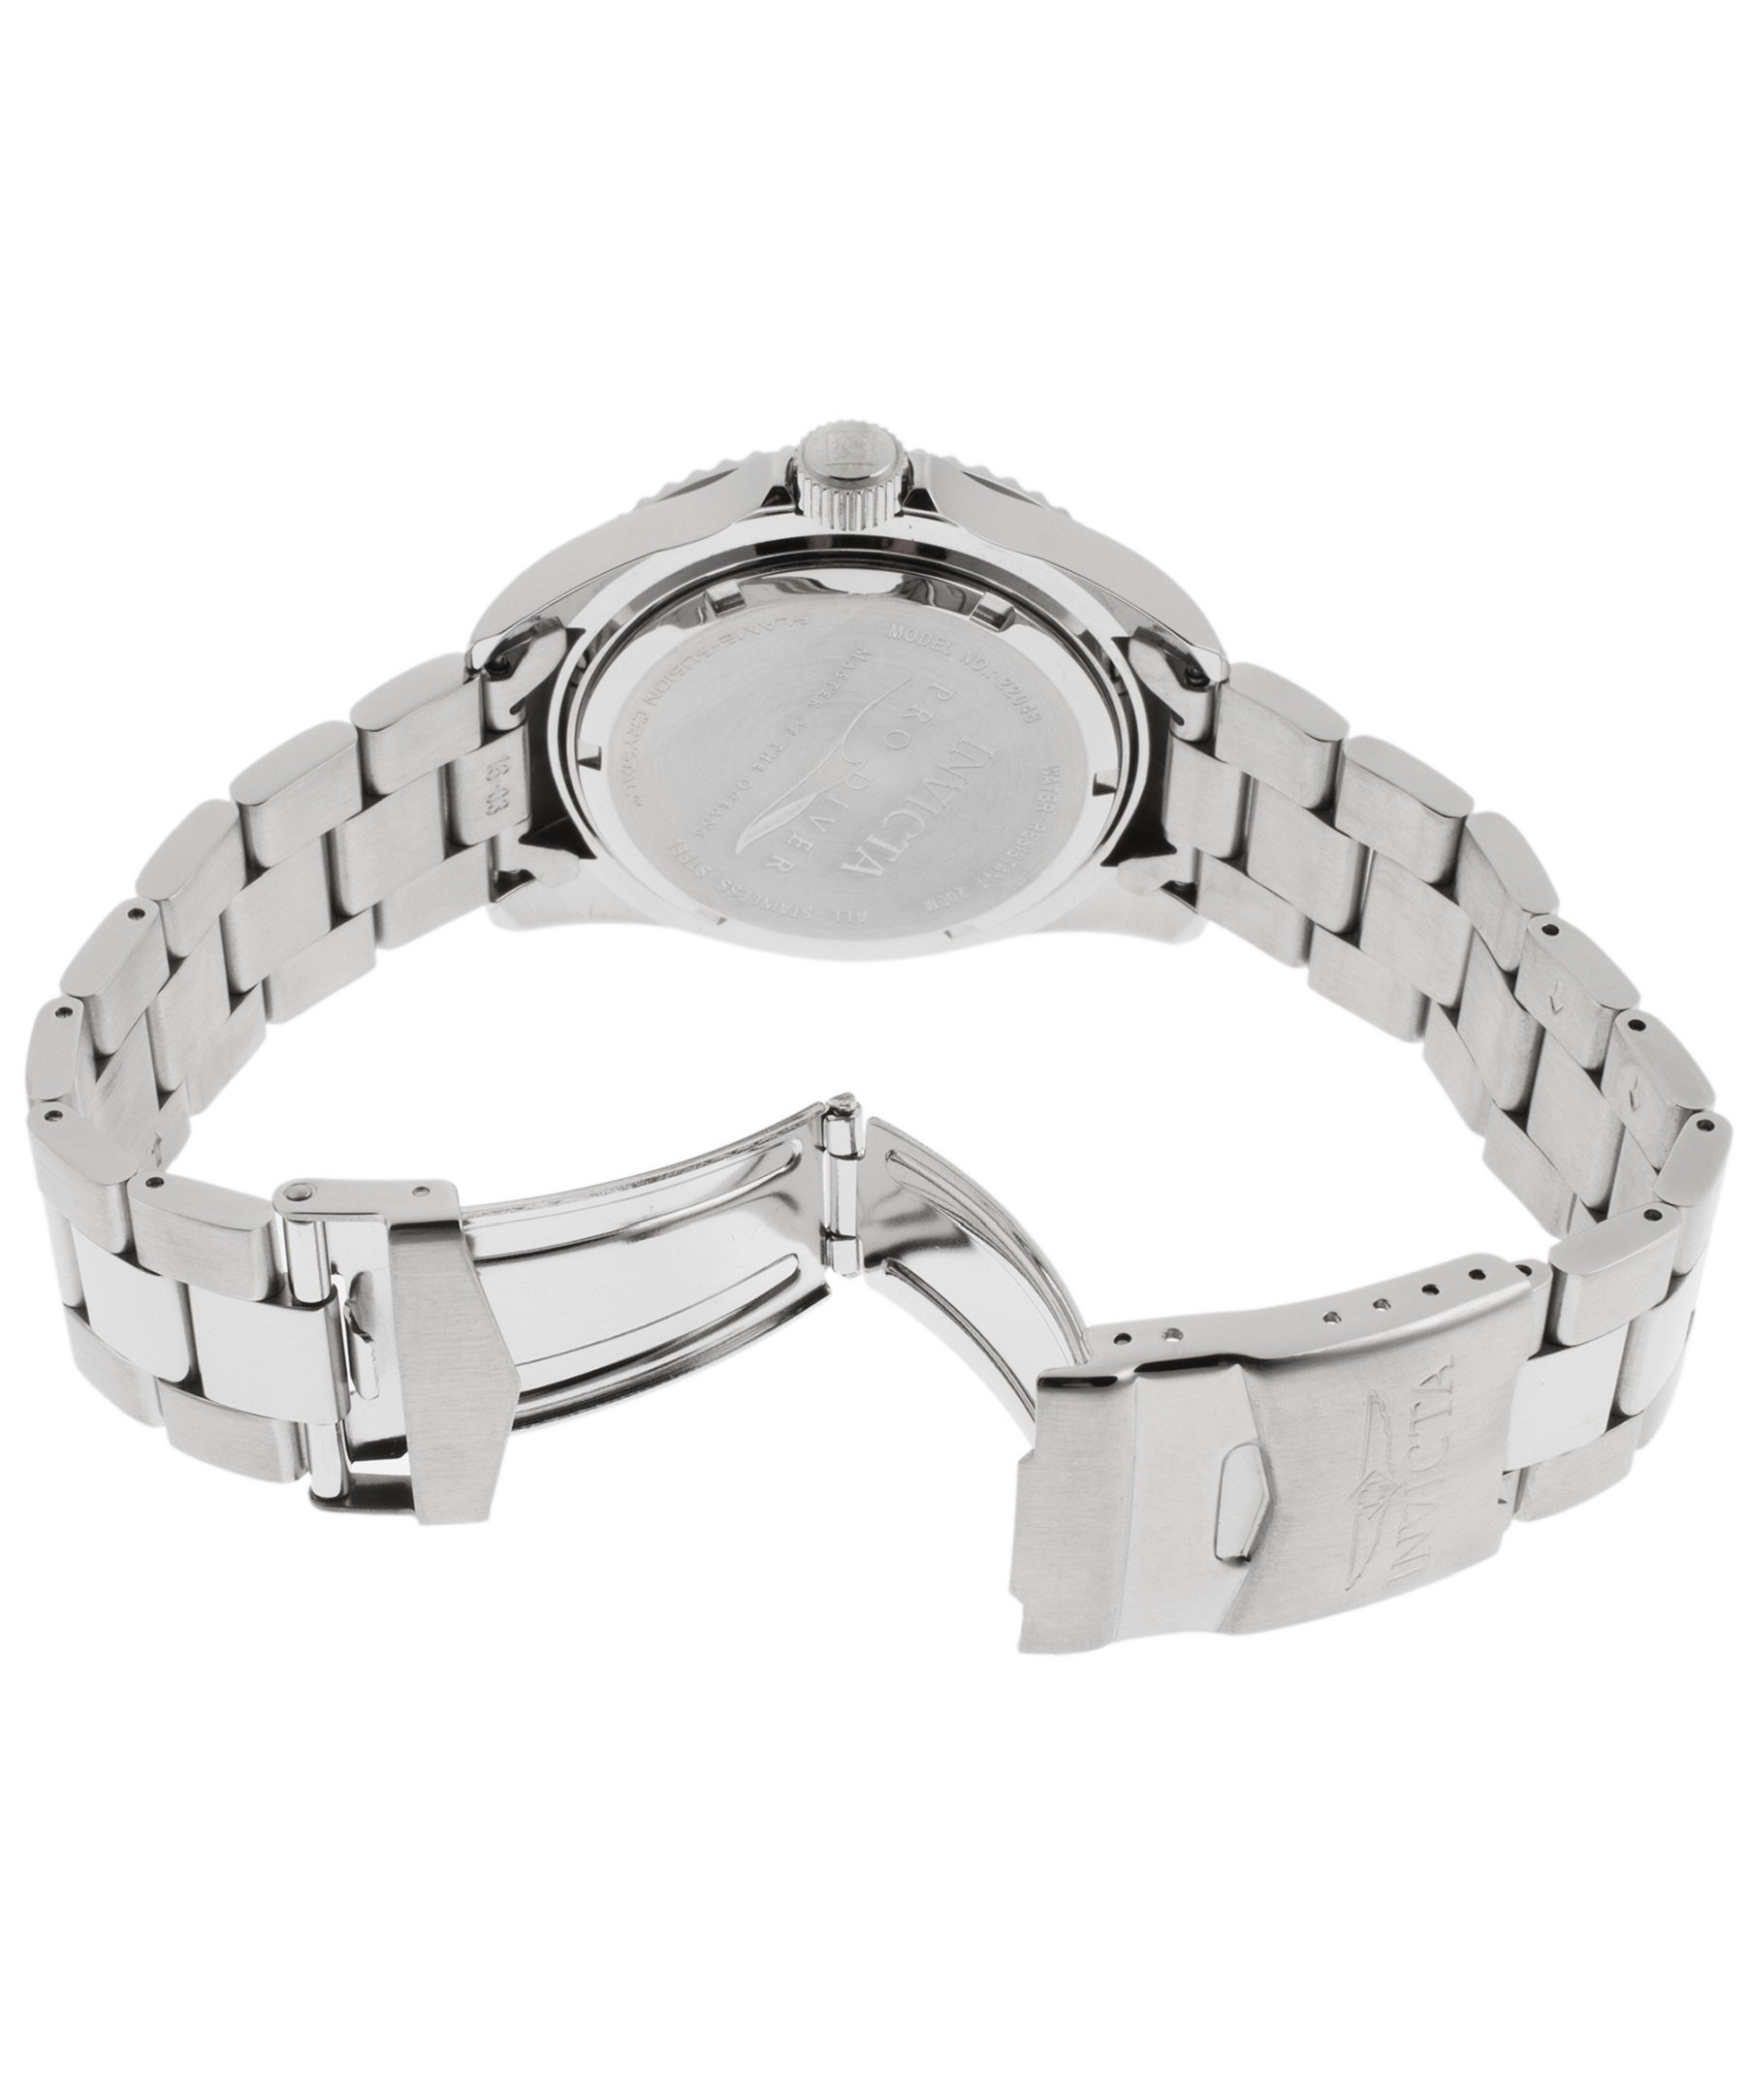 Invicta Men's Pro Diver Quartz Diving Watch with Stainless-Steel Strap, Silver, 22 (Model: 22048) by Invicta (Image #3)